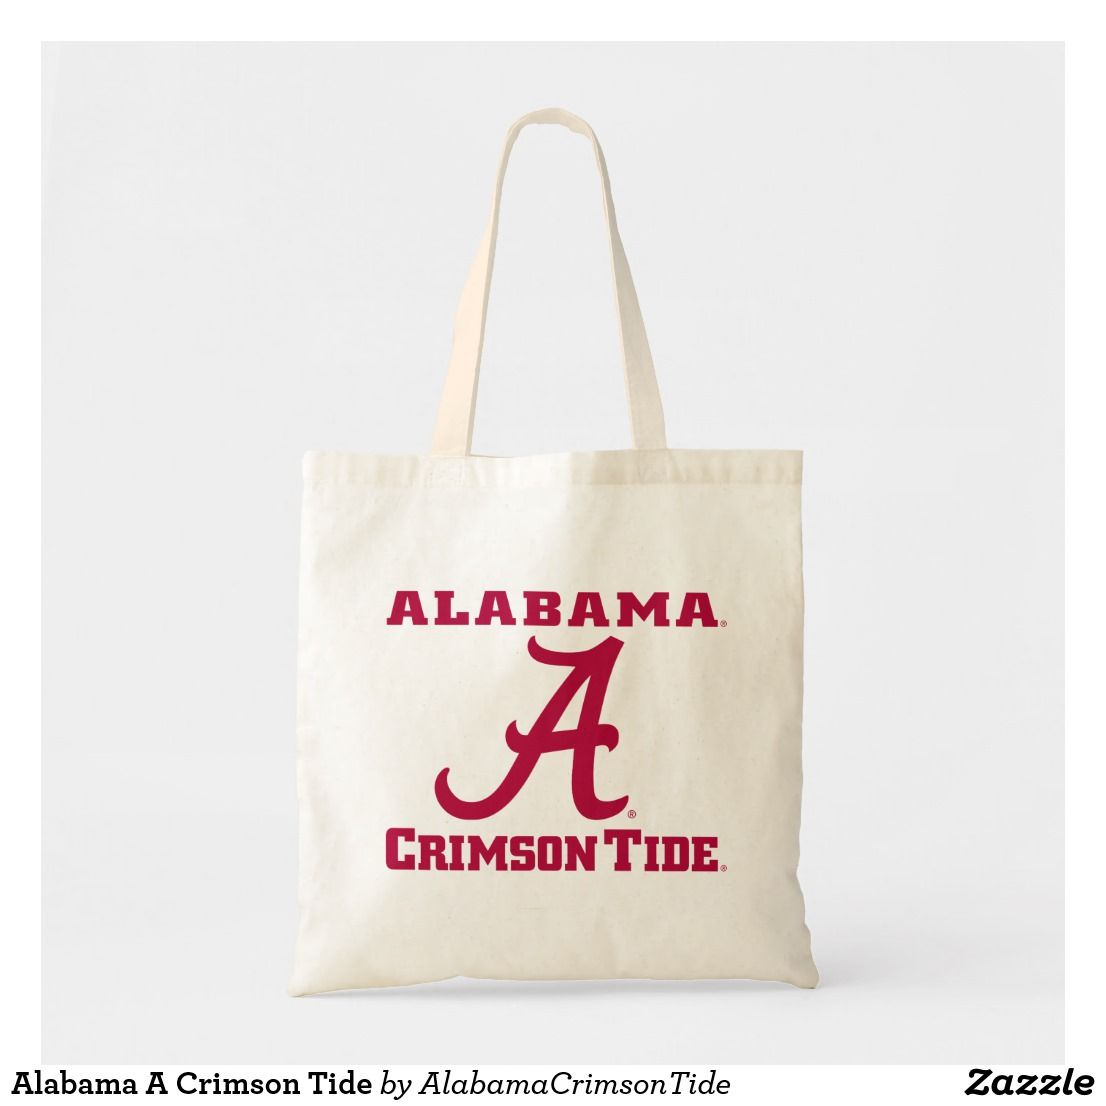 Alabama A Crimson Tide Tote Bag Crimsontide Universityofalabama Alabamafootball Alabamapride